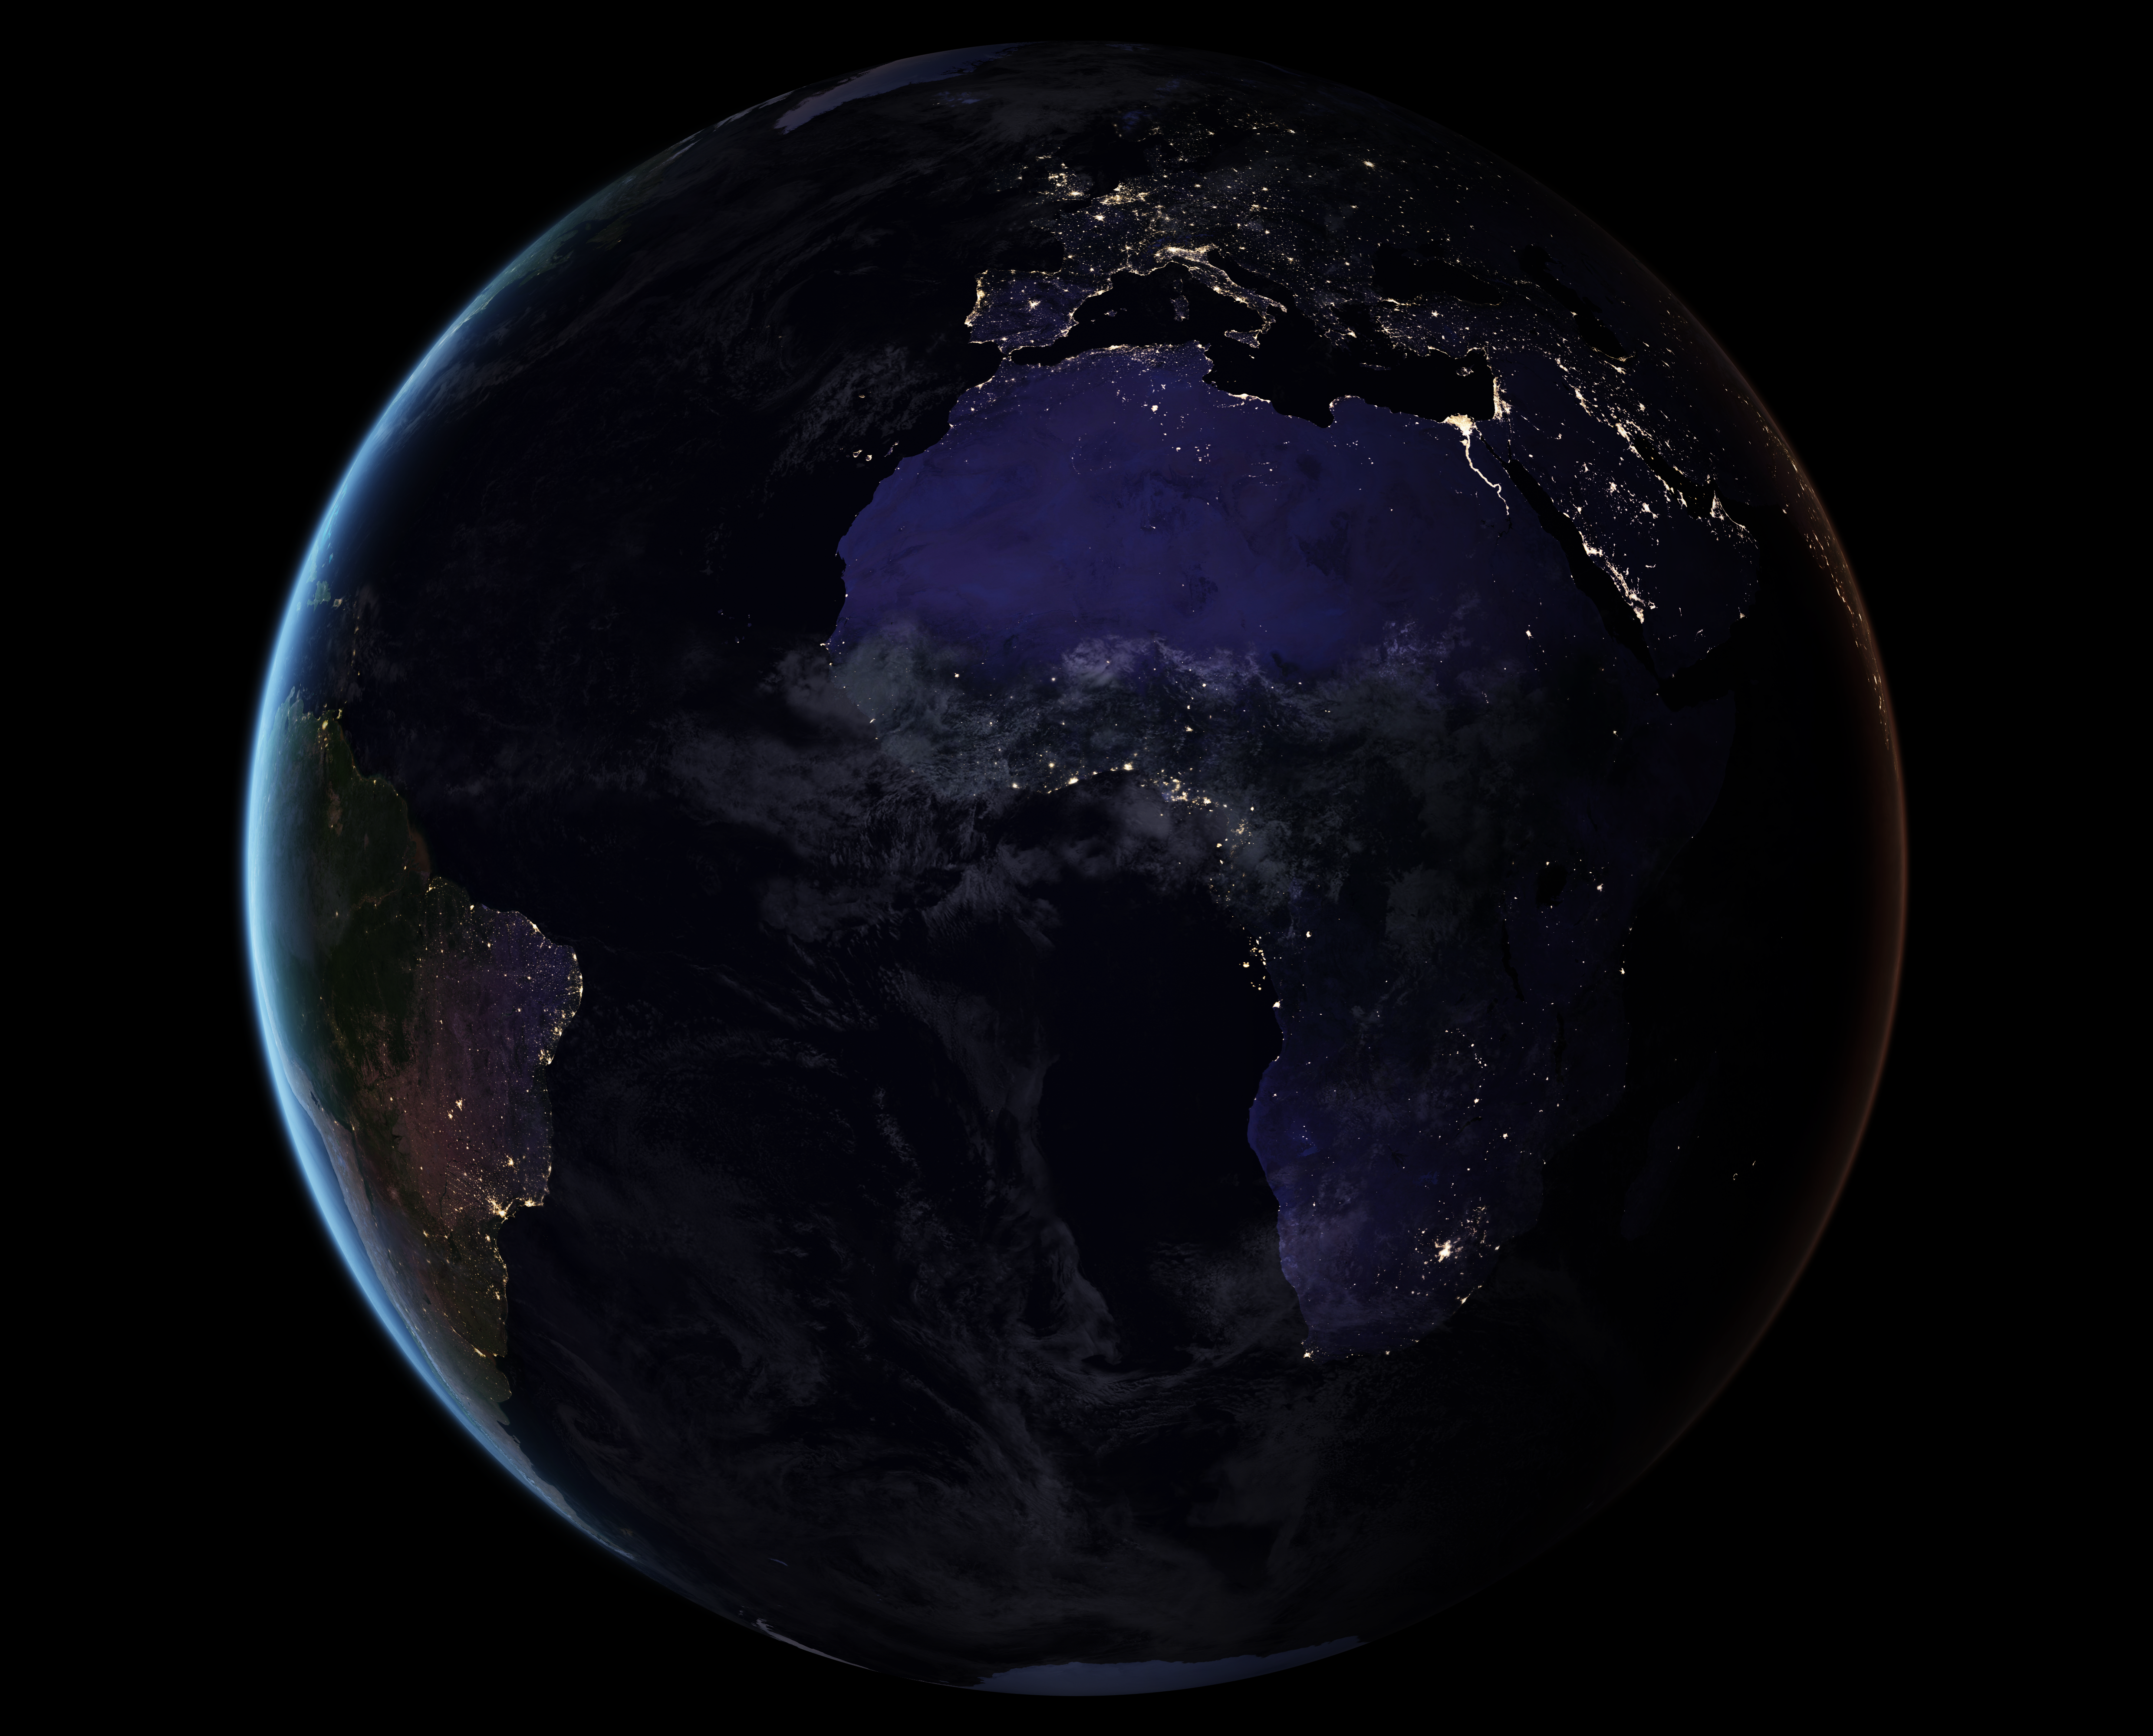 Earth at night view large image 4960x4000 png 114 mb gumiabroncs Images